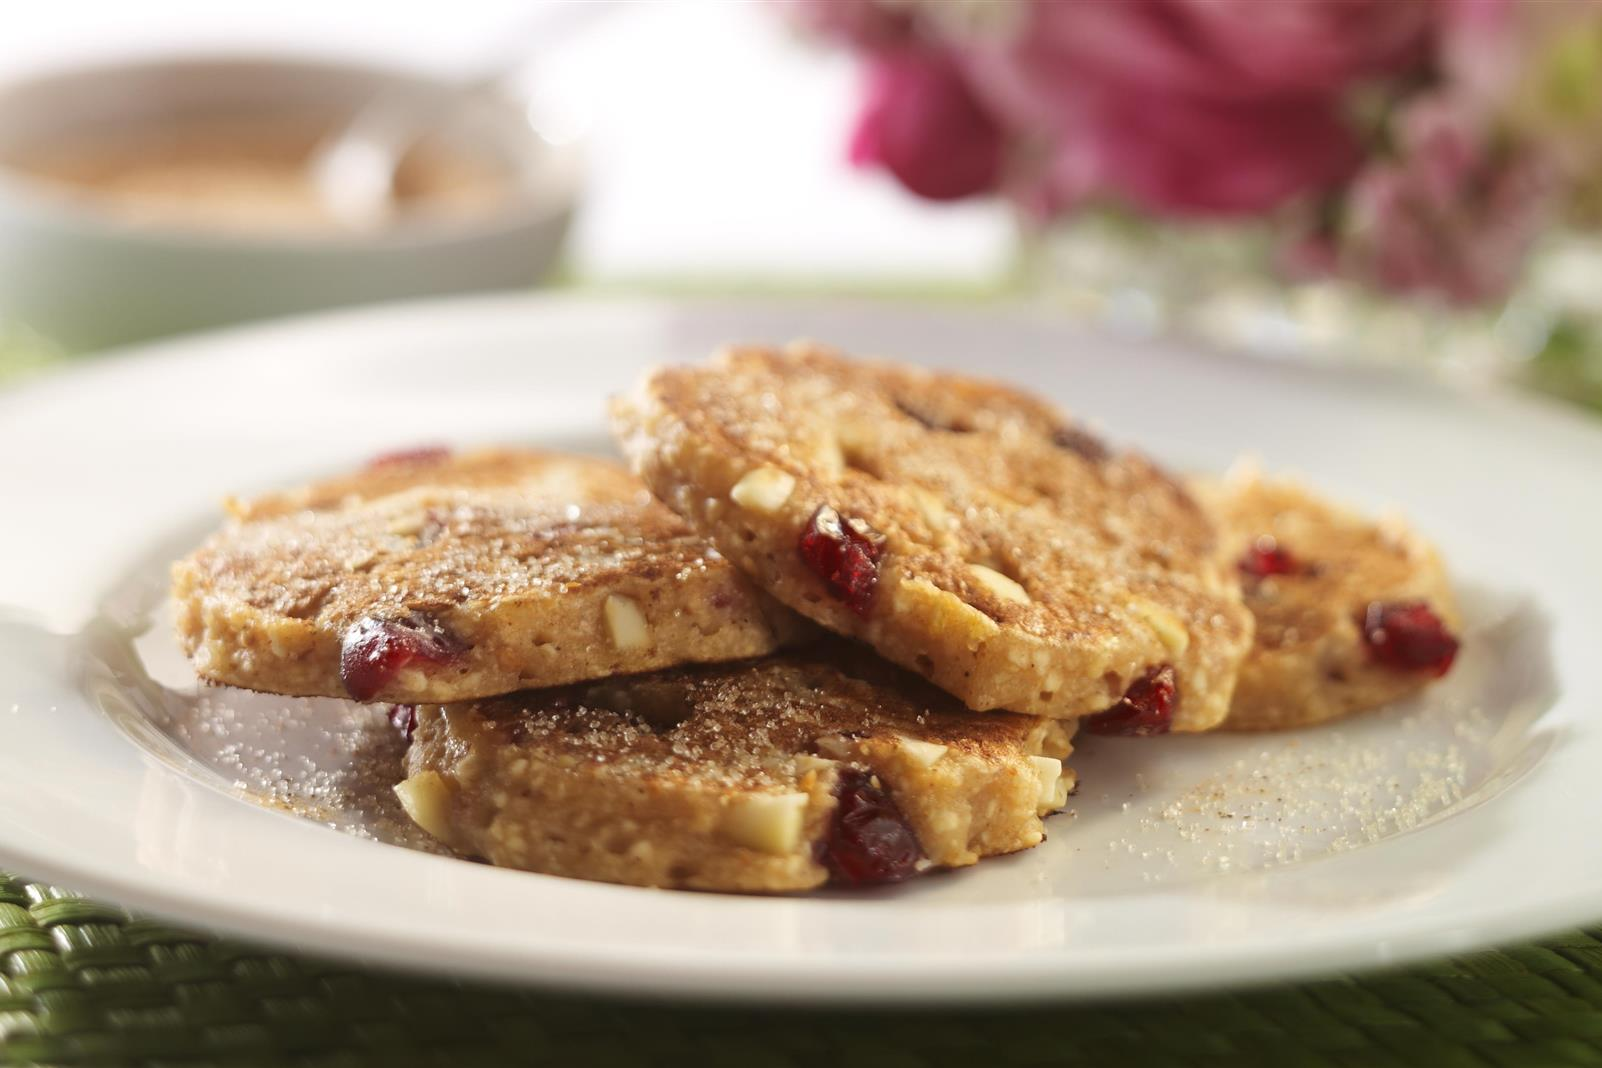 Passover Pancakes with Craisins® Dried Cranberries